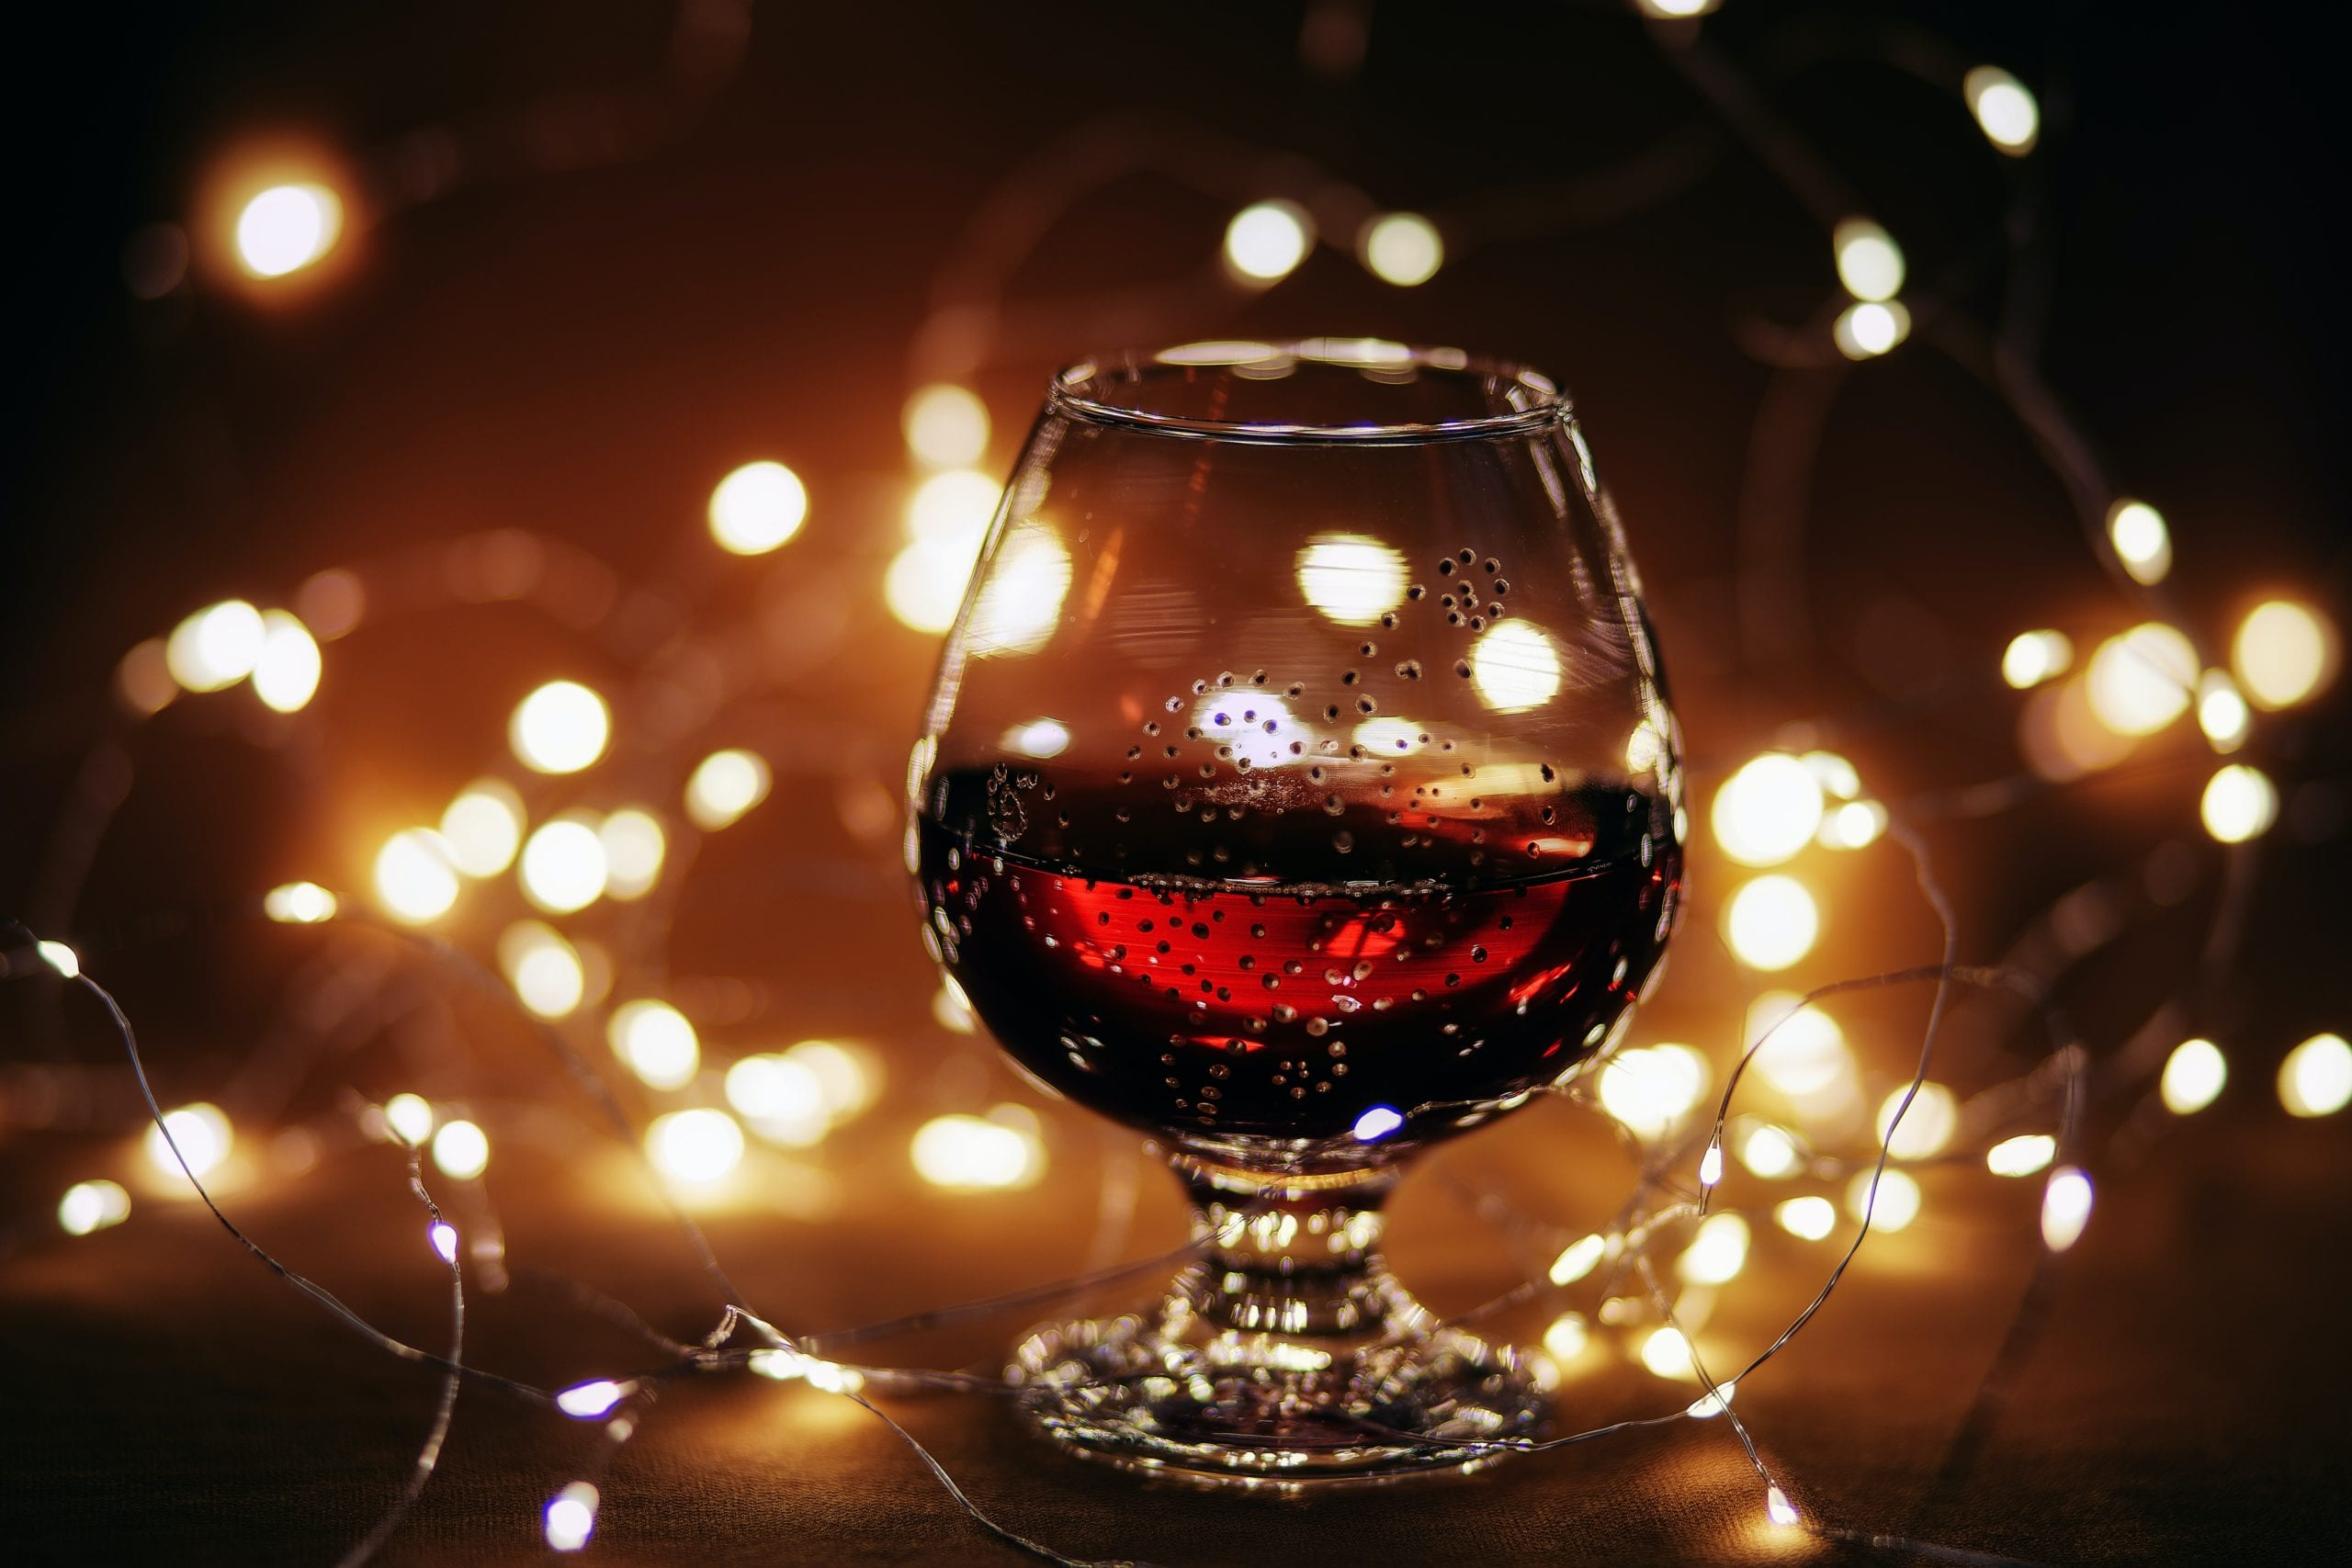 A port glass is a specialty wine glass and is specifically designed with a smaller size and narrow opening to reduce evaporation of this high-alcohol wine.